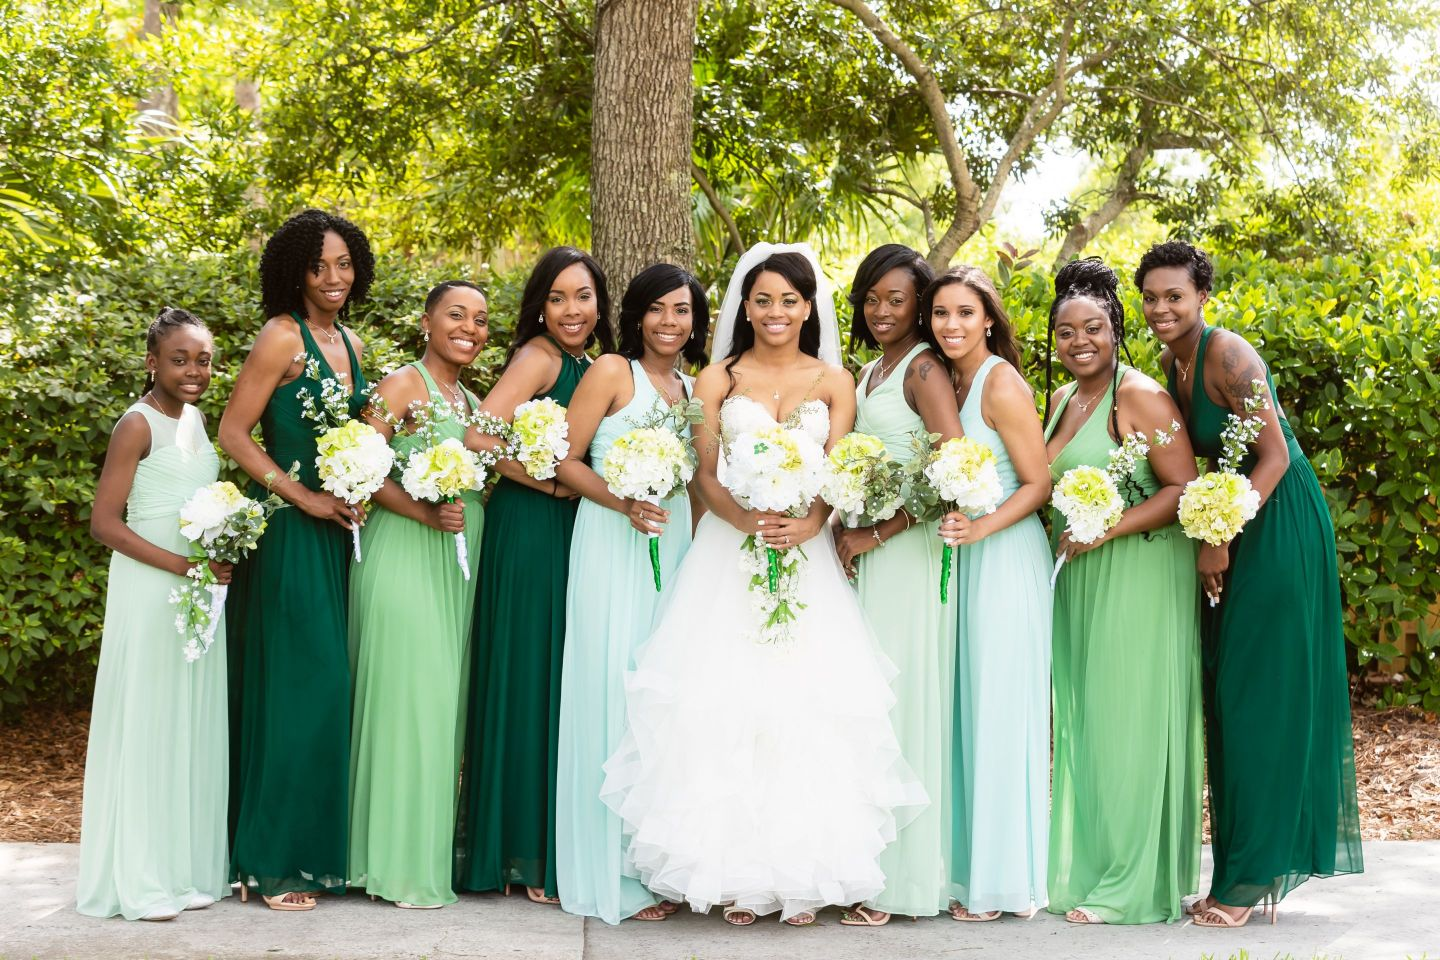 Foster-Wedding-by-Andre-Brown-at-Sonesta-HHI-4-1440x960 Beachfront Wedding Inspiration at the Sonesta Resort Hilton Head Island